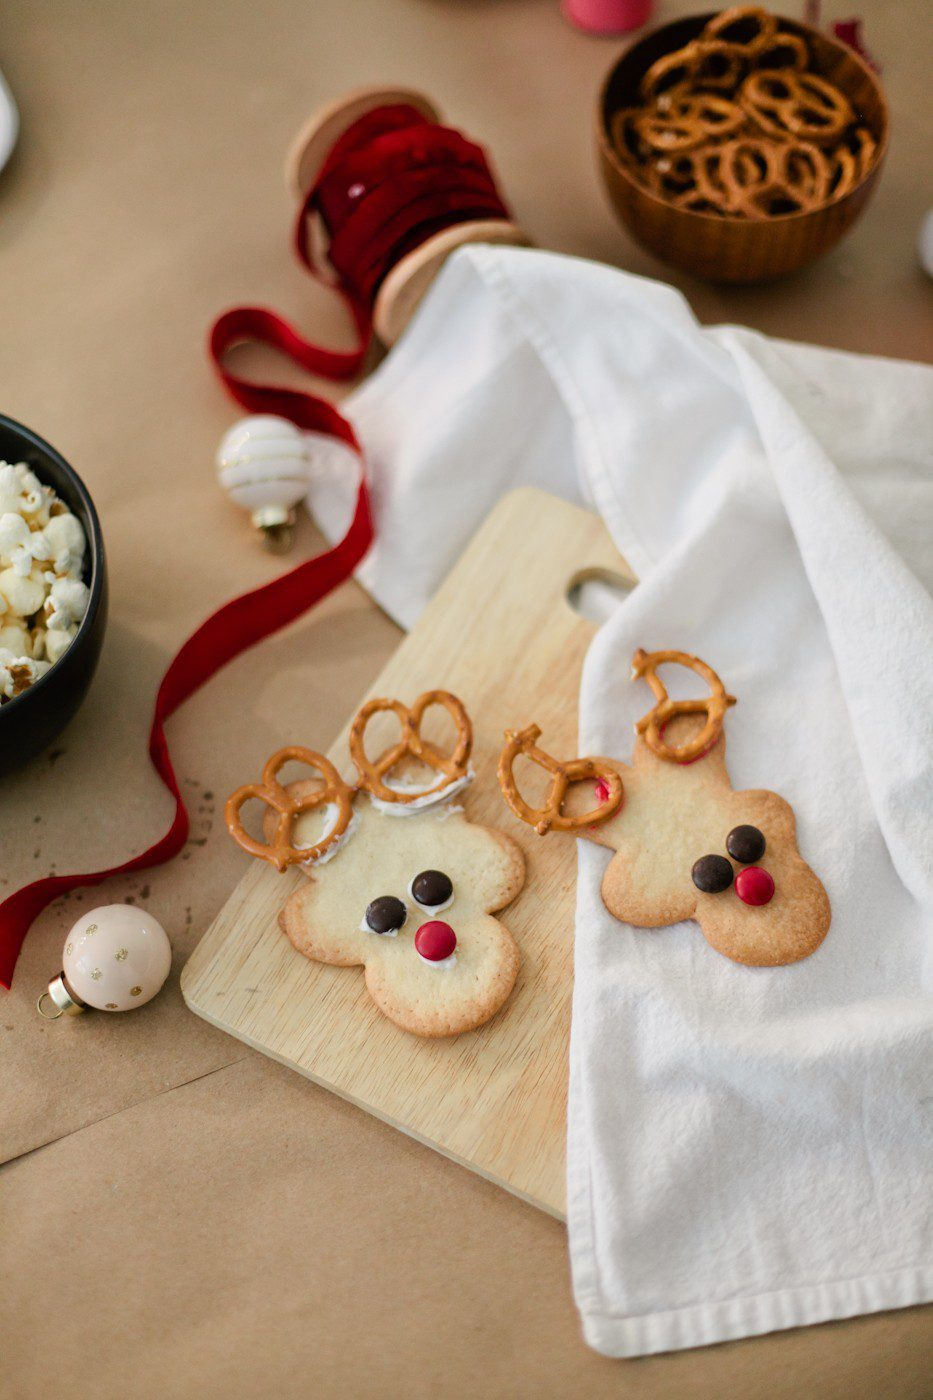 5 Tips to Host your Very Own Cookie Decorating Party